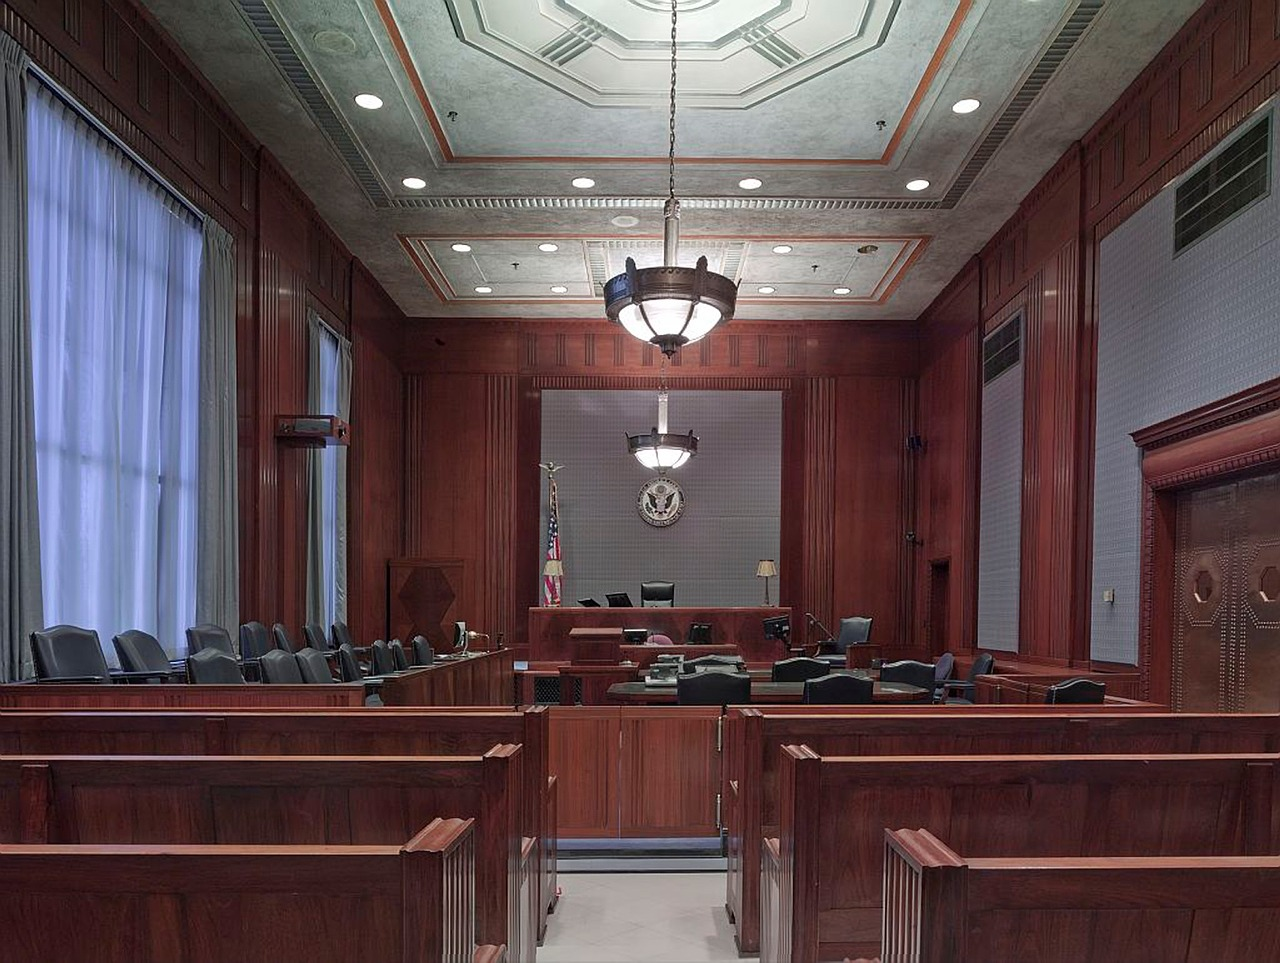 When Do You Need an Expert Witness?